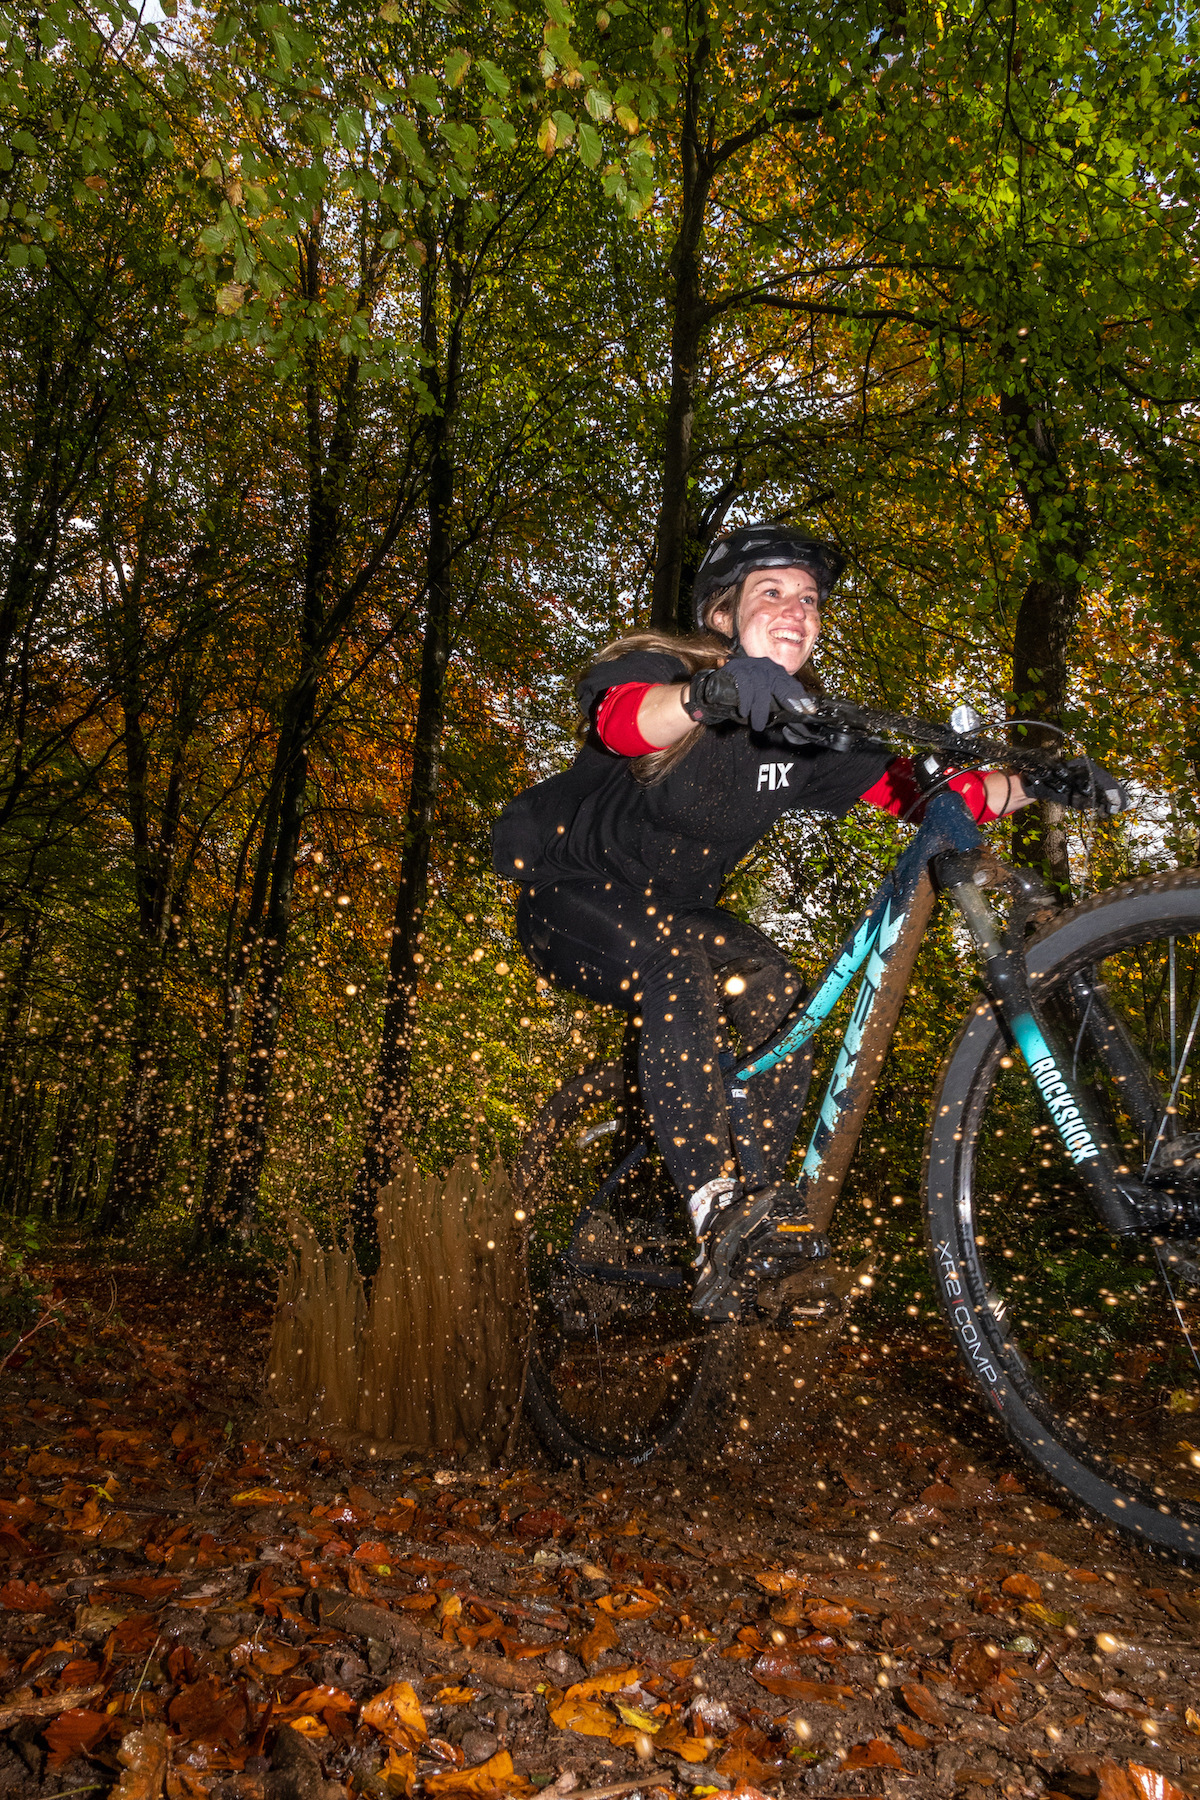 Forest Fawr Mountain Biking Andy Kettlewell/ Pistyll Productions